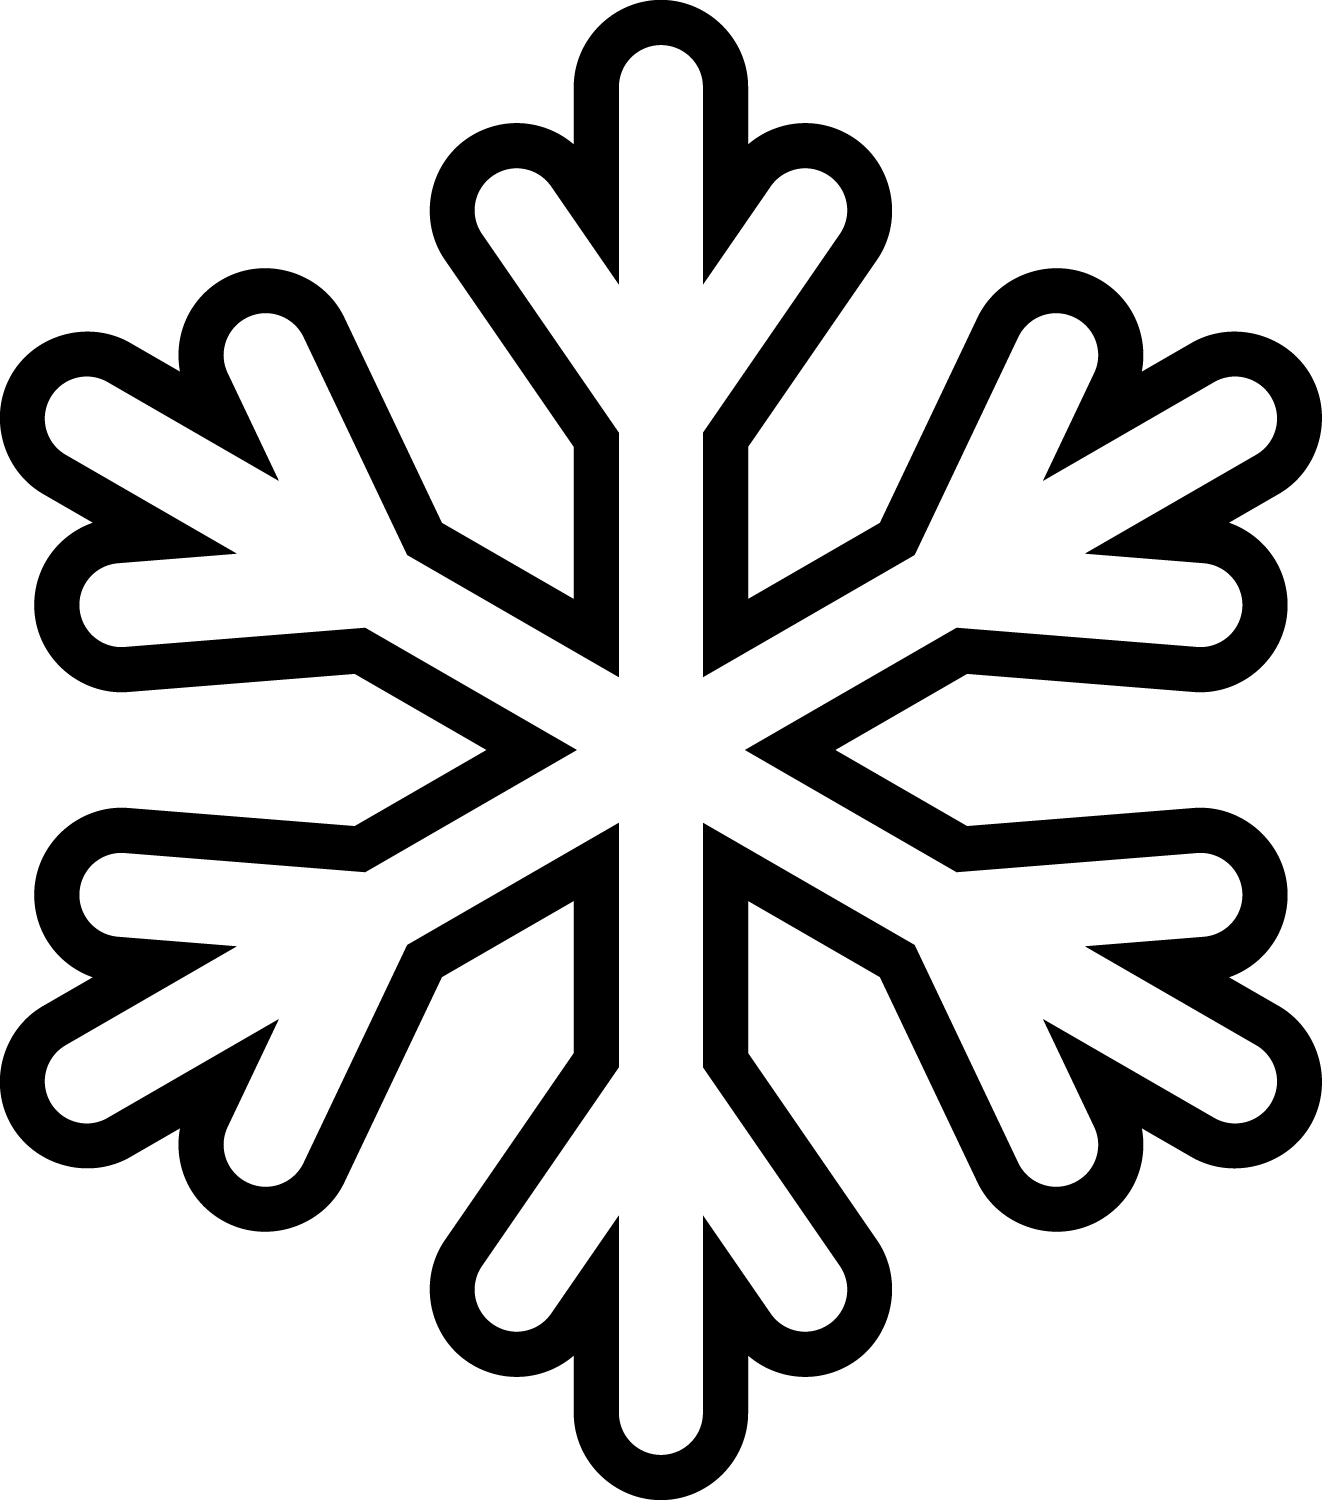 White snowflake with no background clipart vector free library snowflake-clipart-outline-xigKKLE5T.png.cf.png (1322×1500) | Diy ... vector free library